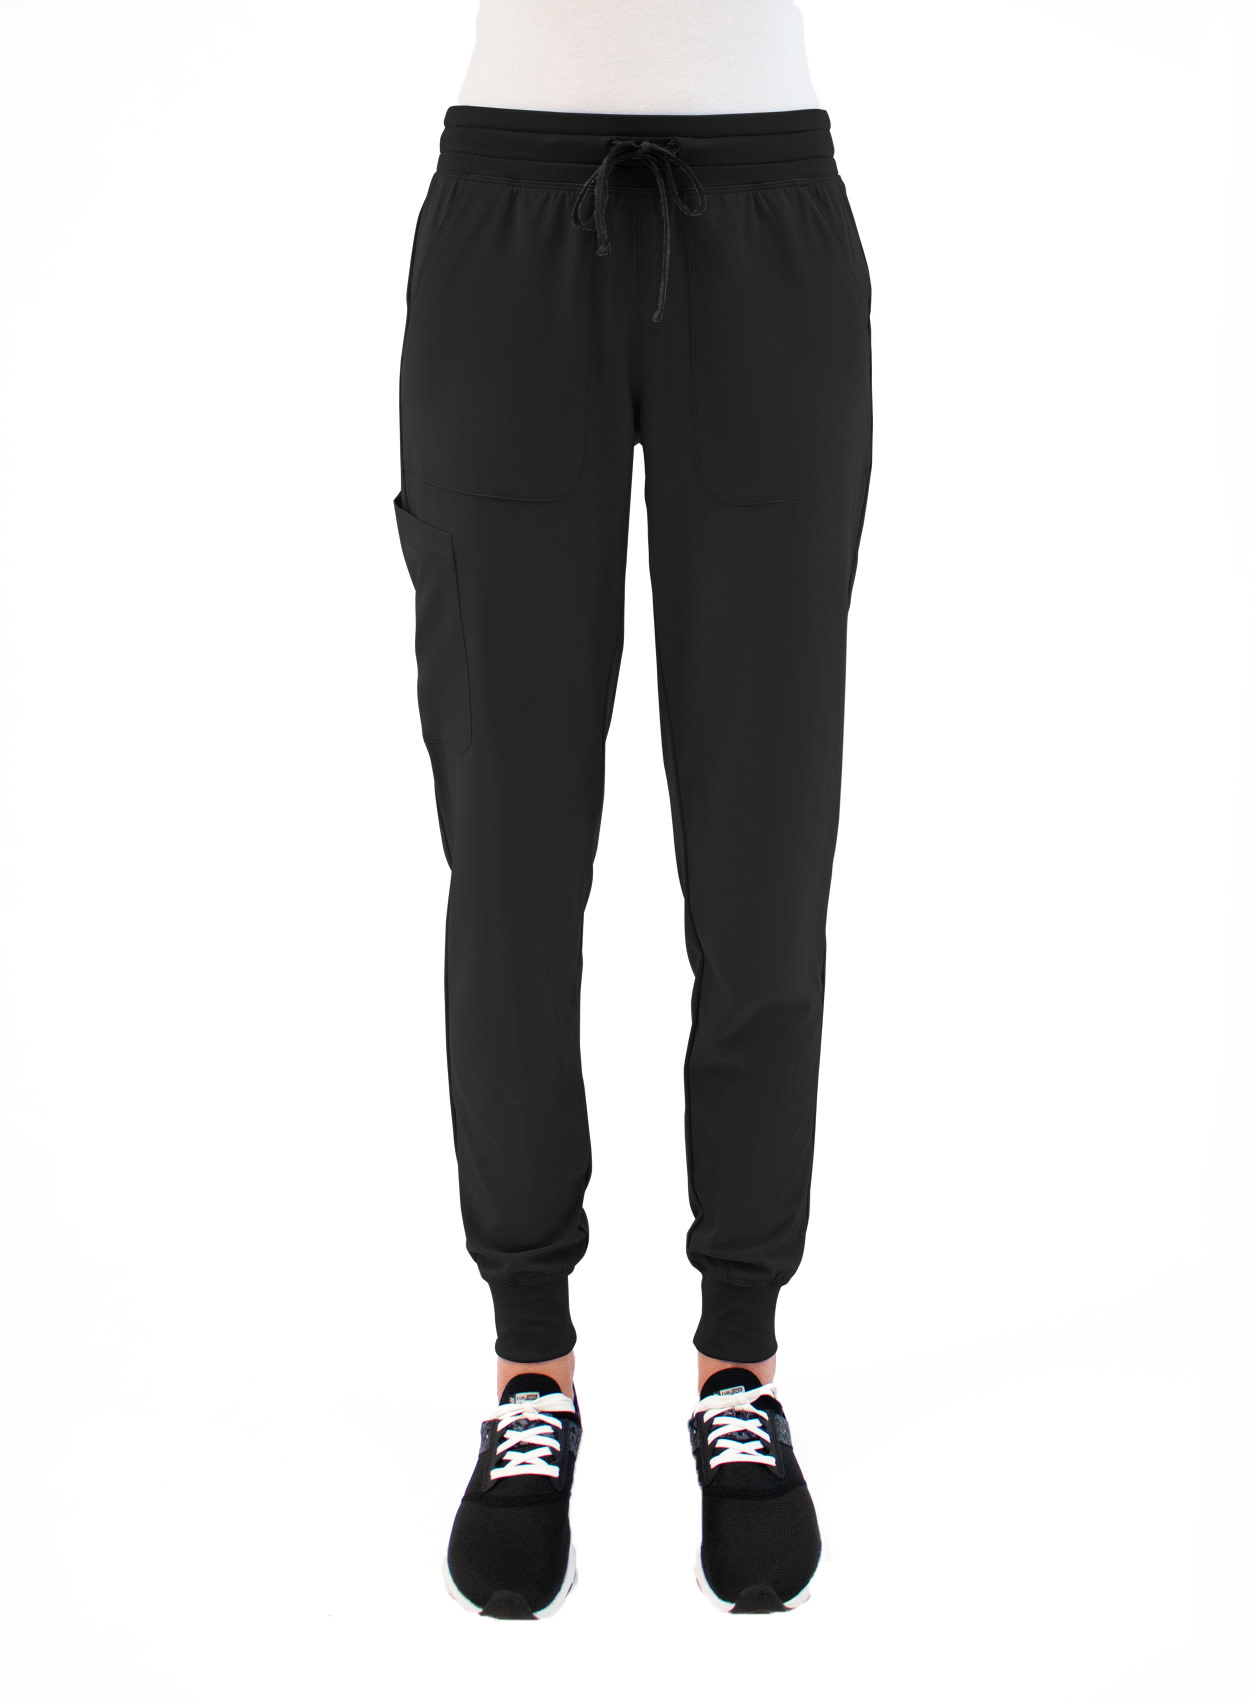 MATRIX IMPULSE Black Yoga Waistband Women's Jogger Pants 8520